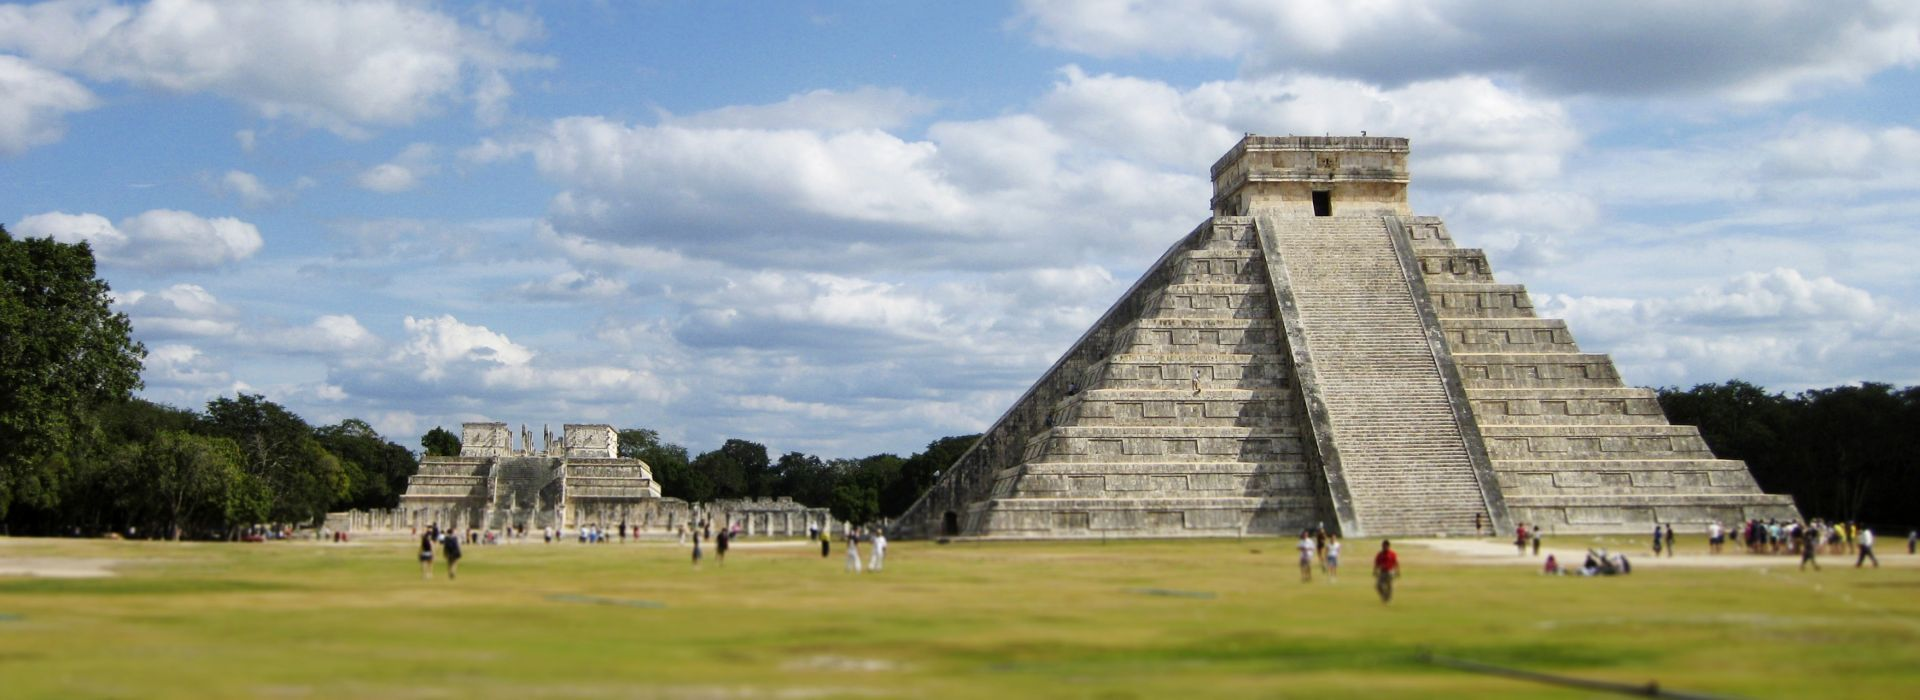 Beach, romance, getaways and relaxation Tours in Mexico City